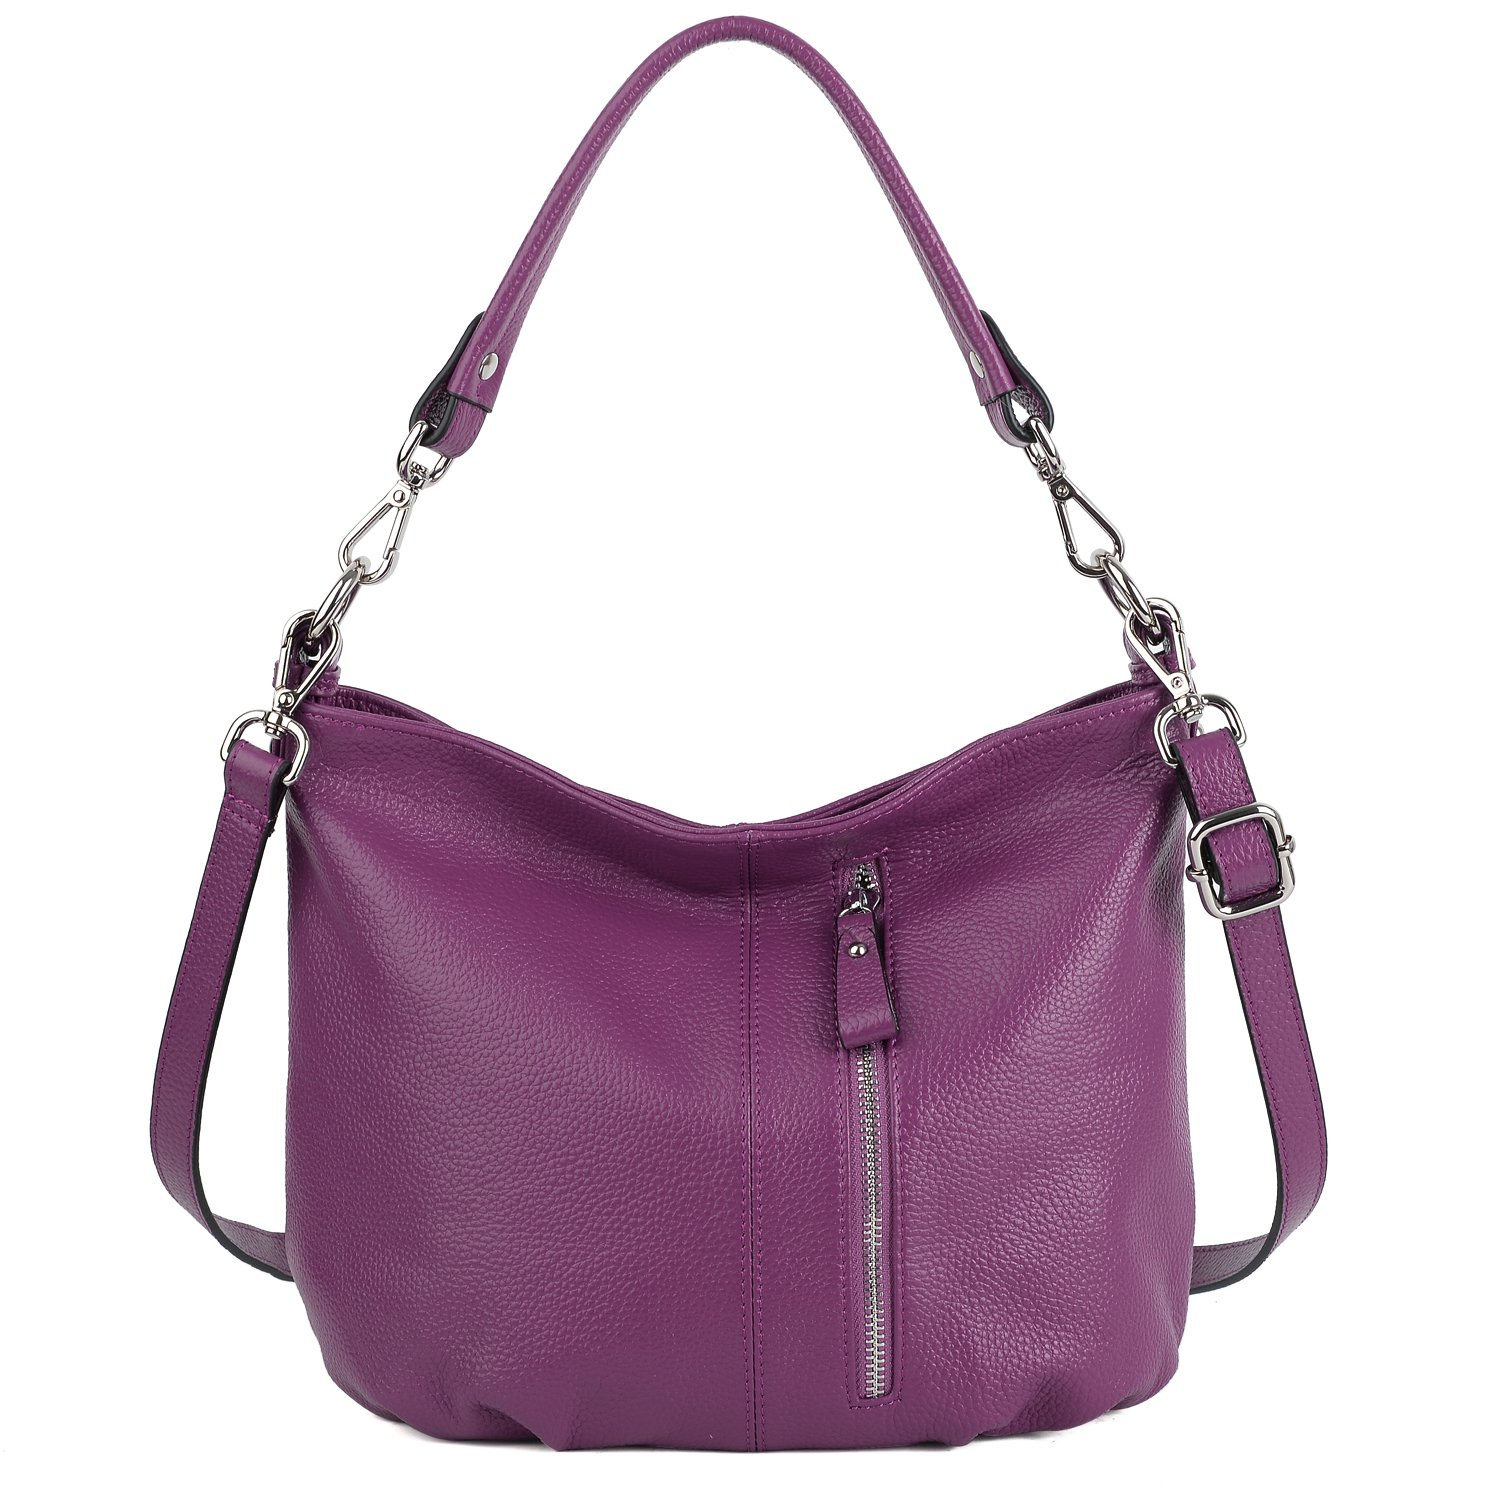 YALUXE Women's Front Pocket Soft Cowhide Leather Small Mini Purse Hobo Style Shoulder Bag Purple